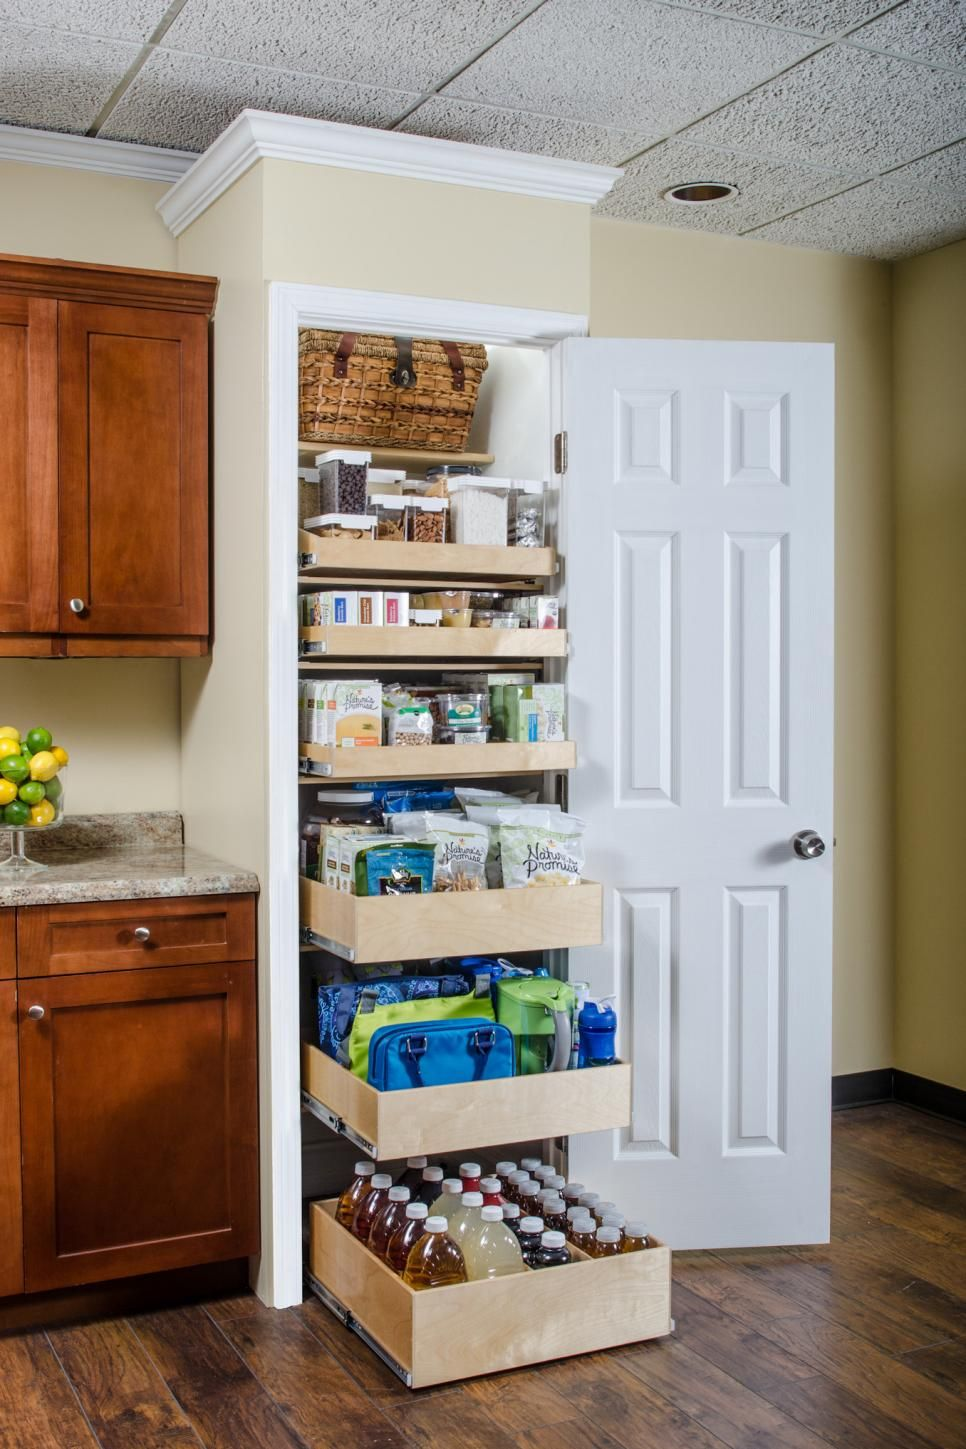 20 Best Pantry Organizers For The Home Kitchen Pantry Kitchen